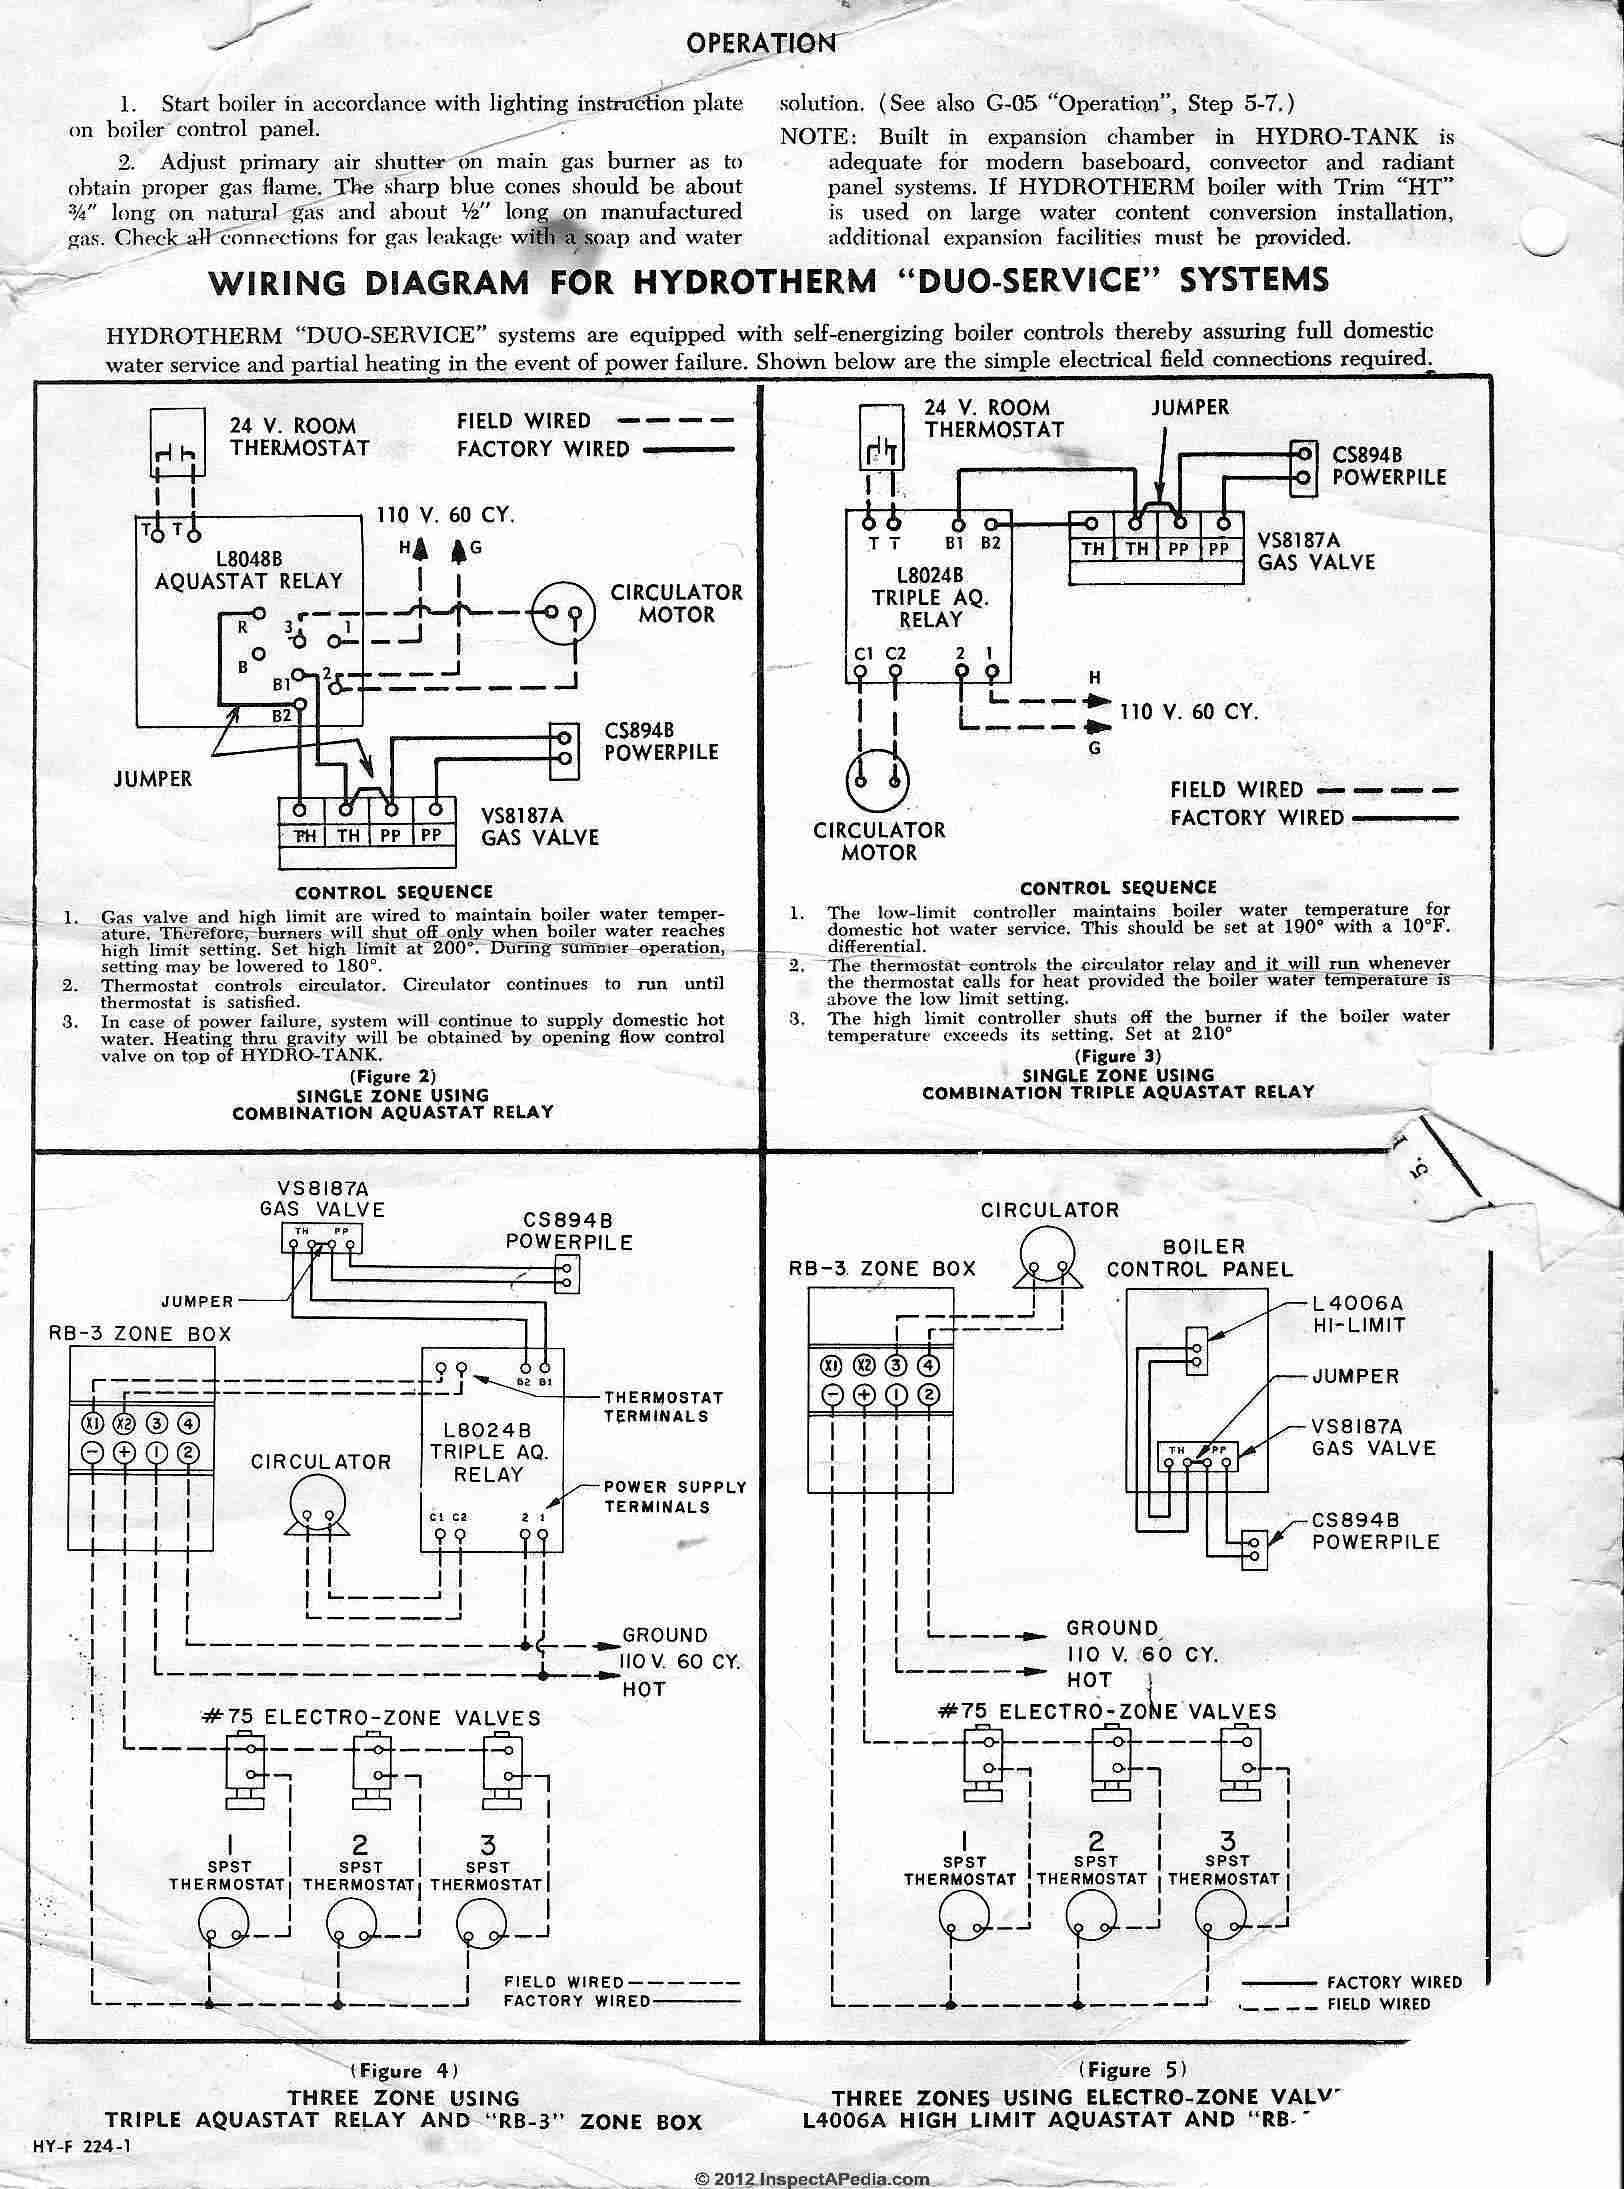 L8024B_Aquastat_0422_DJFcs heating boiler aquastat control diagnosis, troubleshooting, repair lion boilers wiring diagram at gsmportal.co